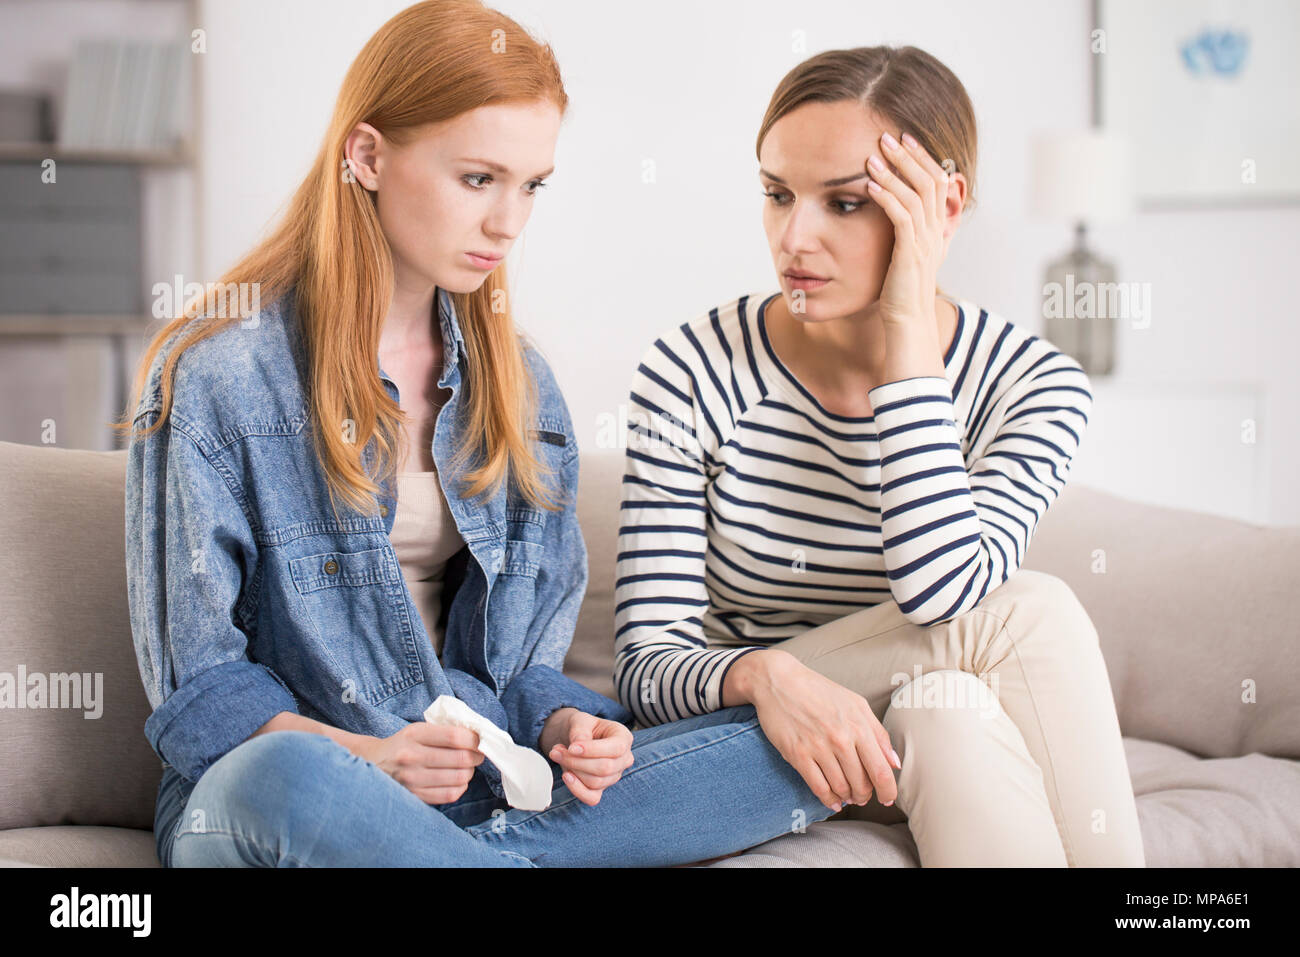 Young woman comforting her sad depressed sister while sitting on sofa in living room, concept of sister support - Stock Image